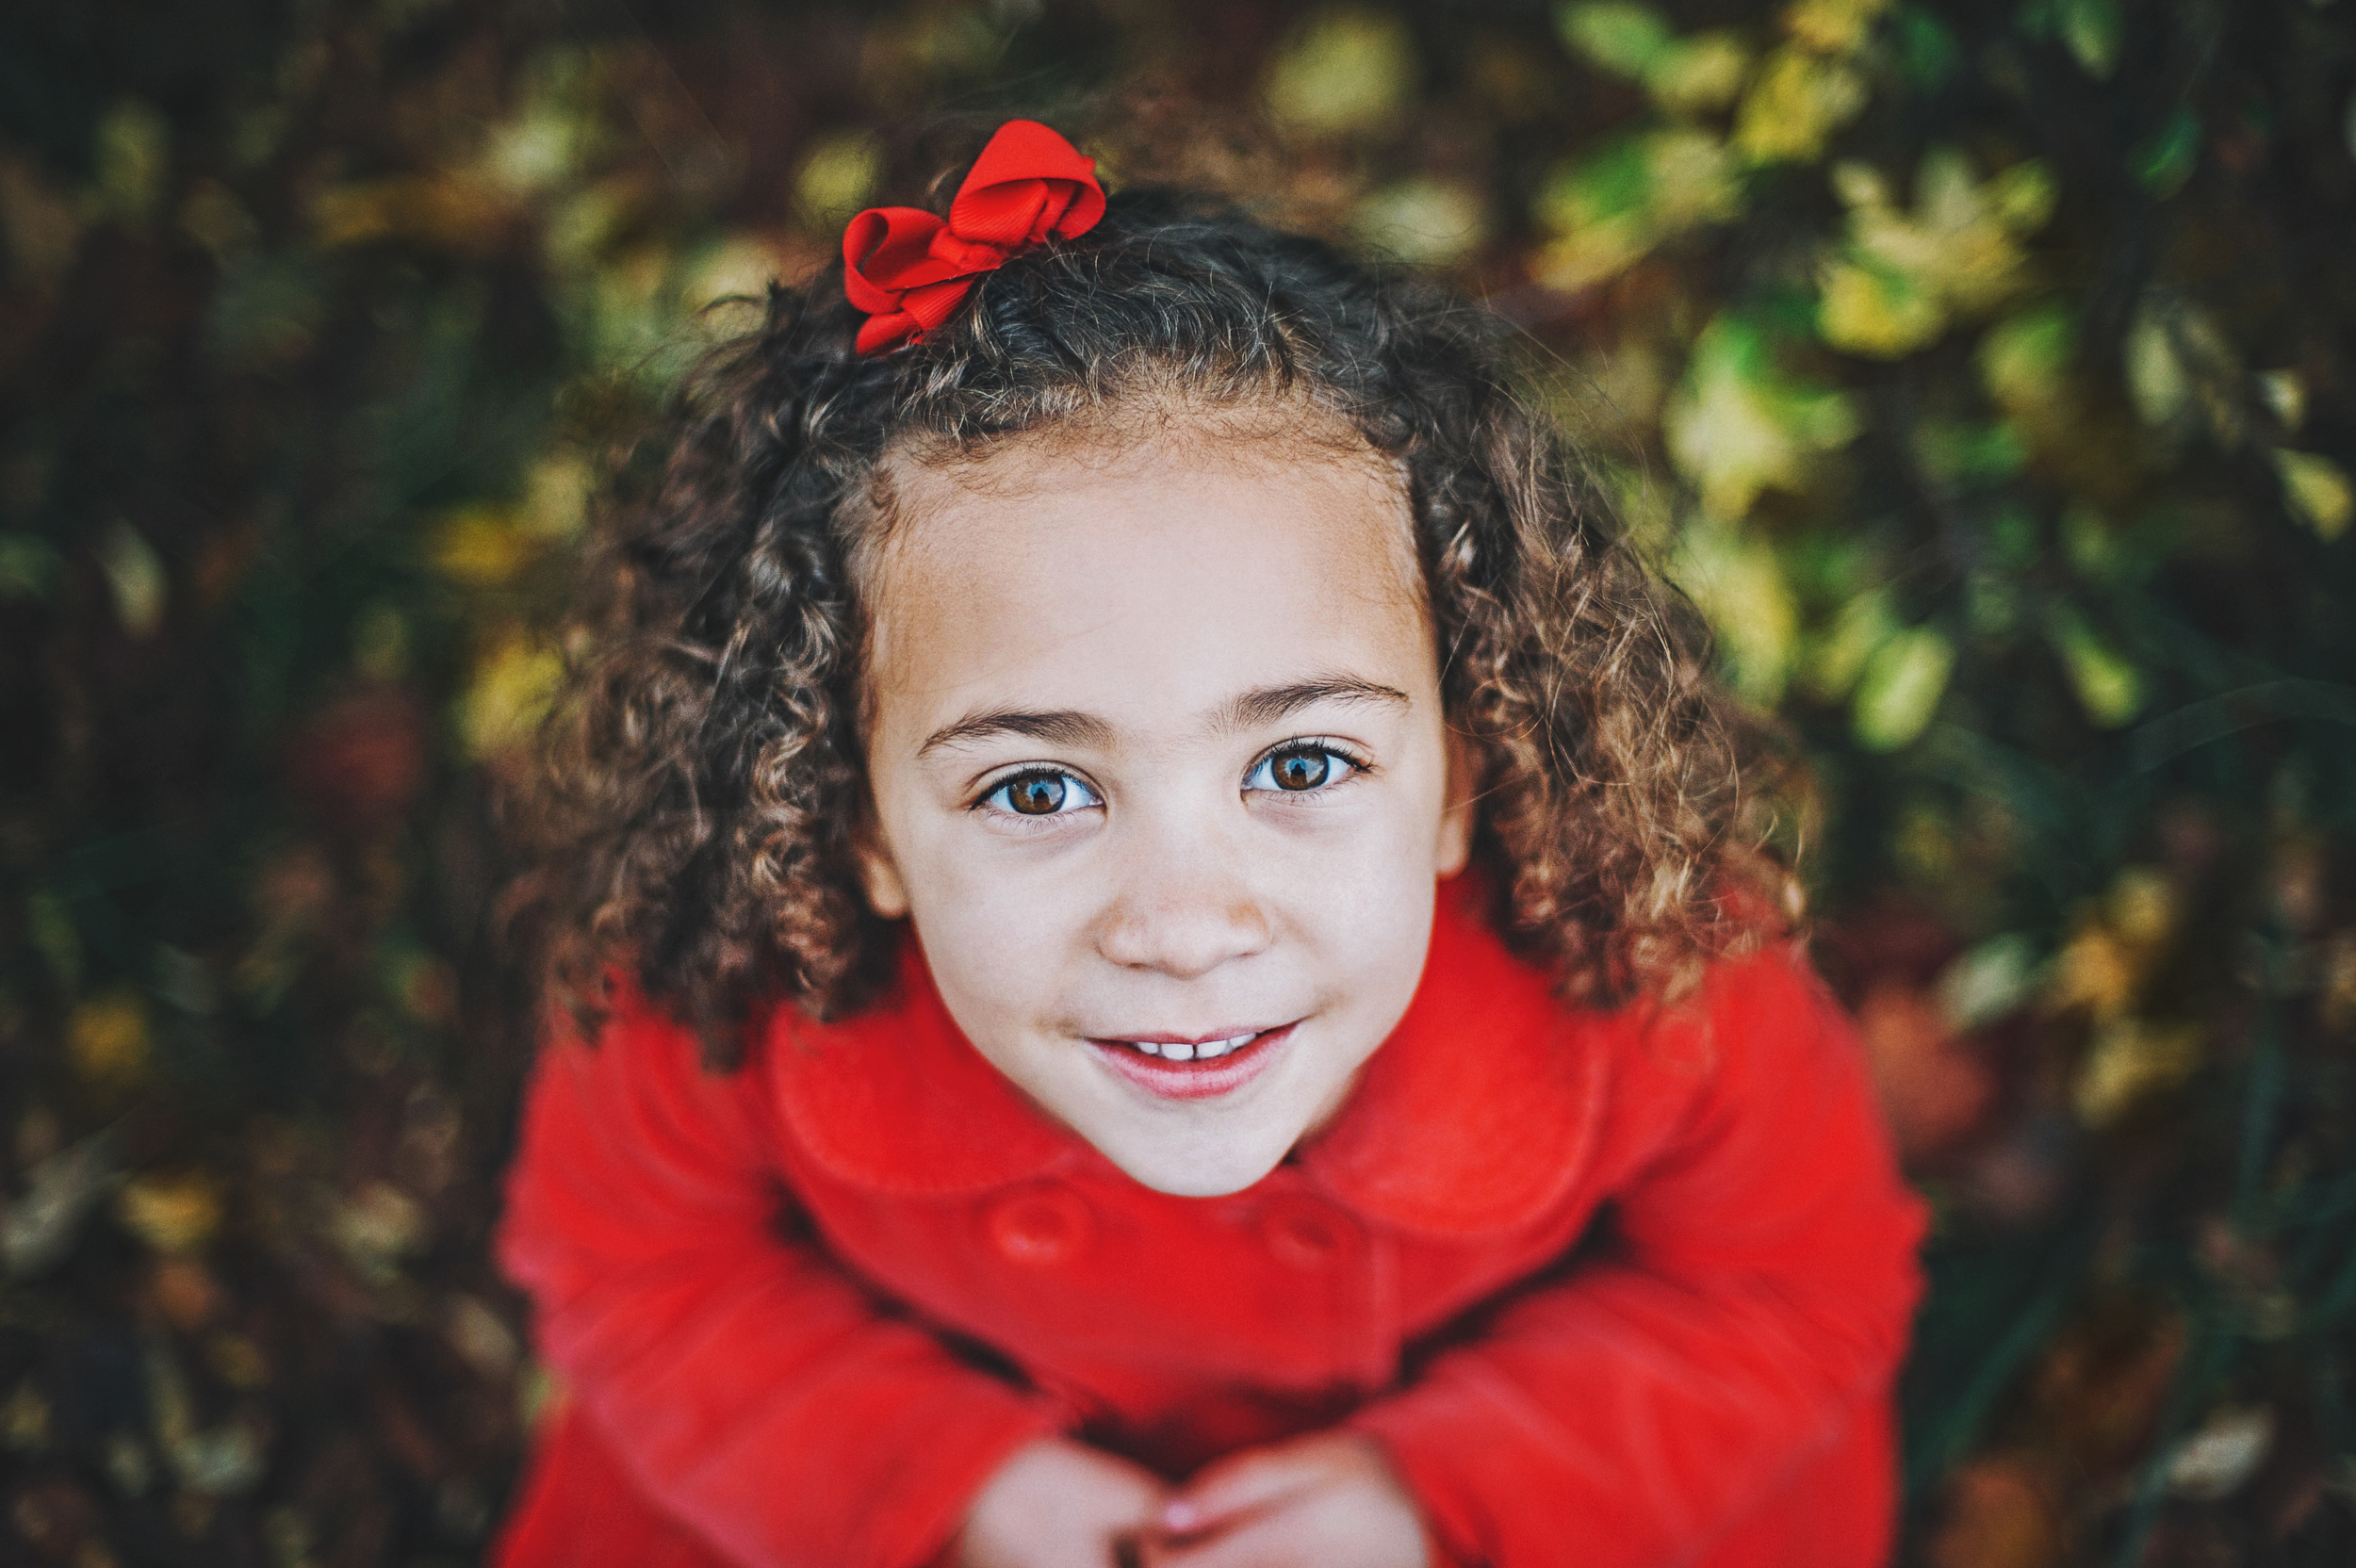 Young girl in red looks into camera Essex Documentary and Lifestyle Portrait Photographer